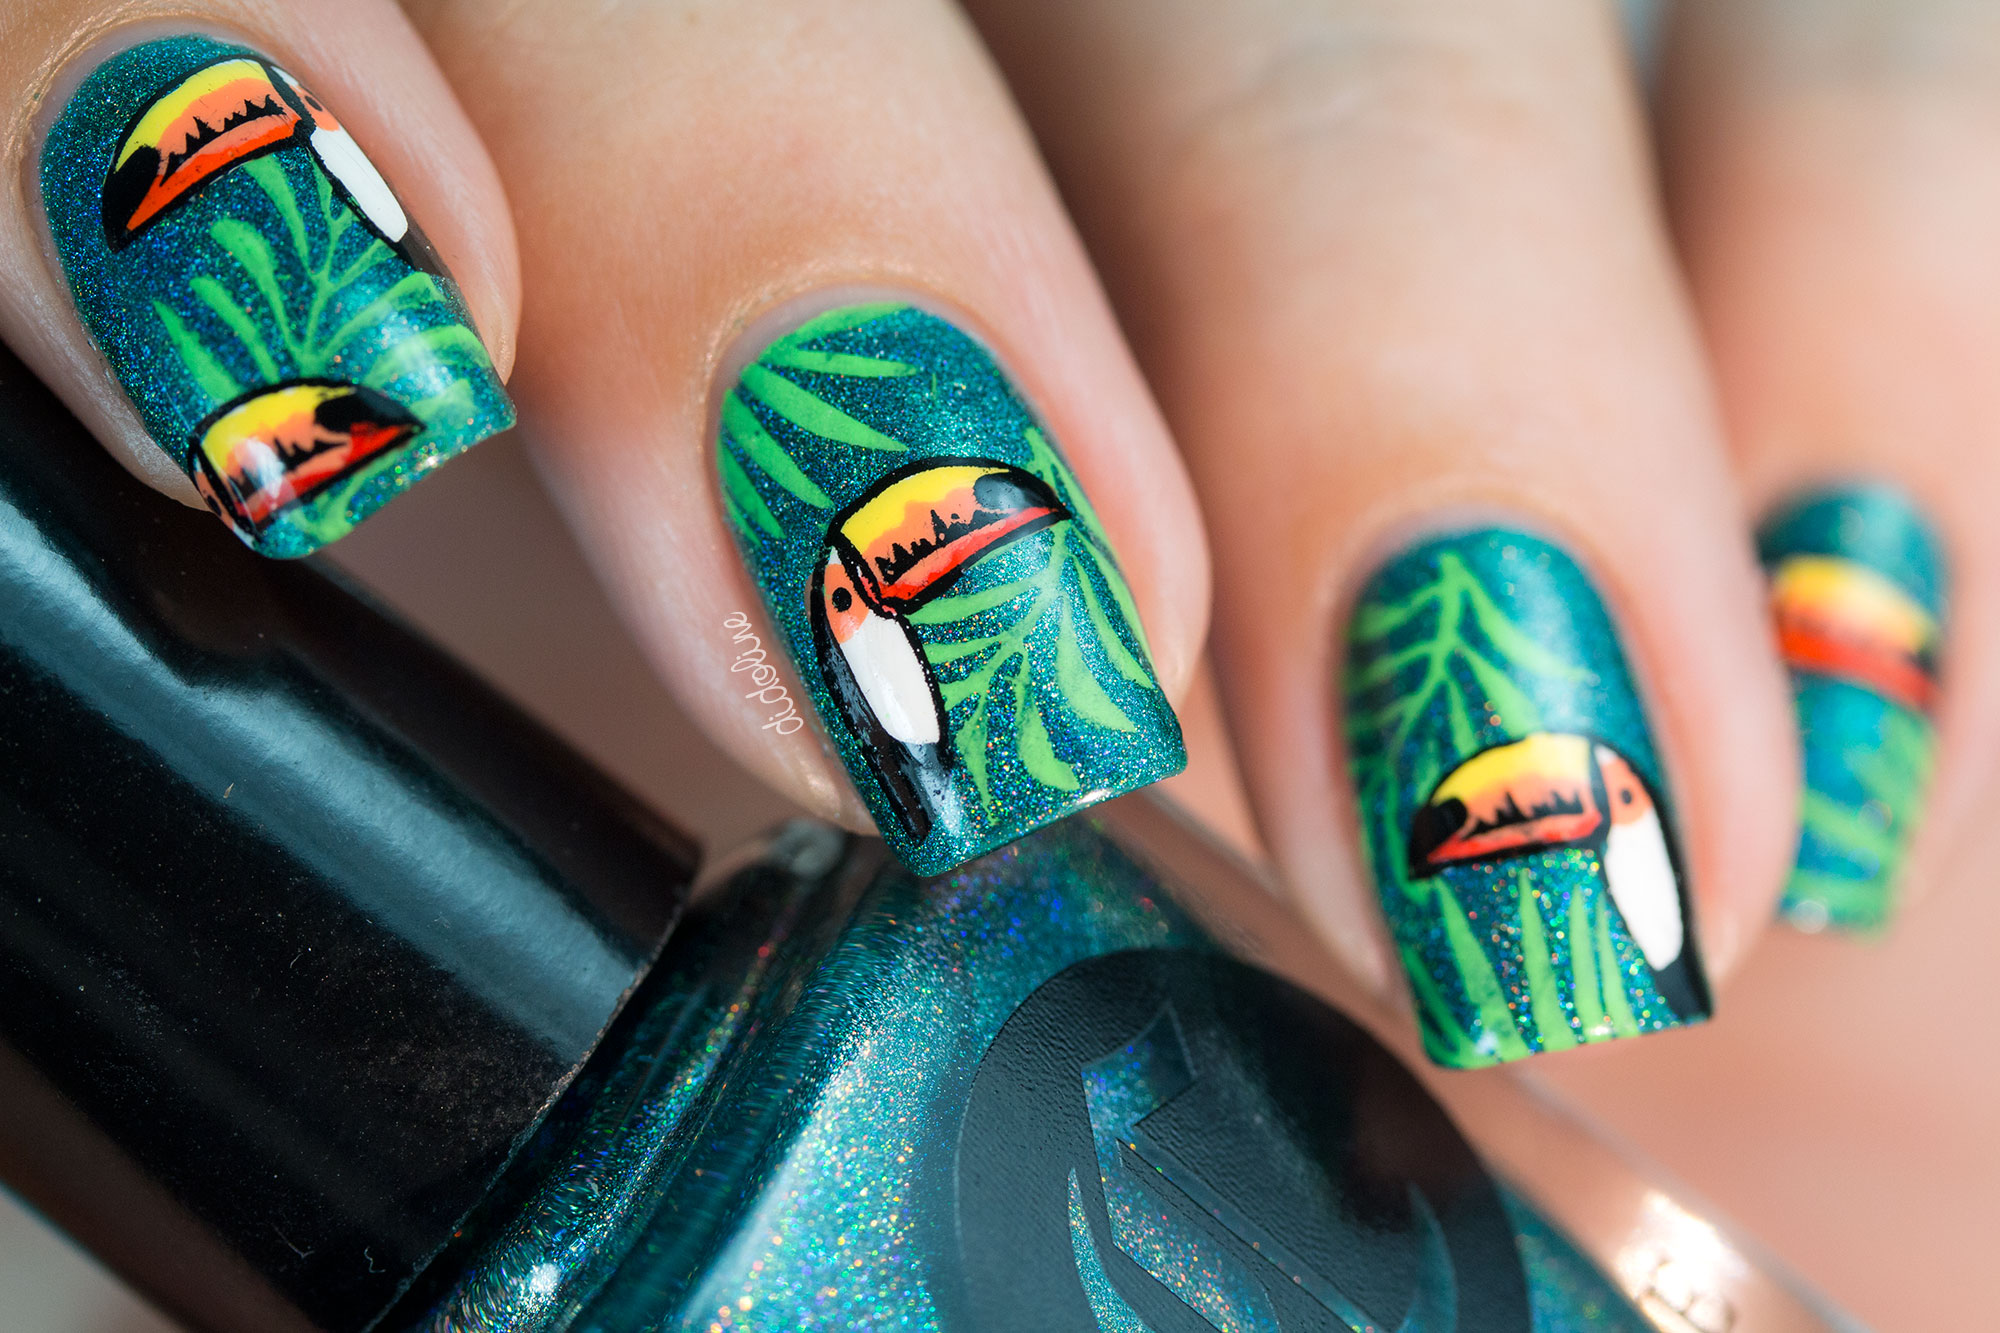 Cirque, La Tropicale - Toucan Nails - Tropical Nails